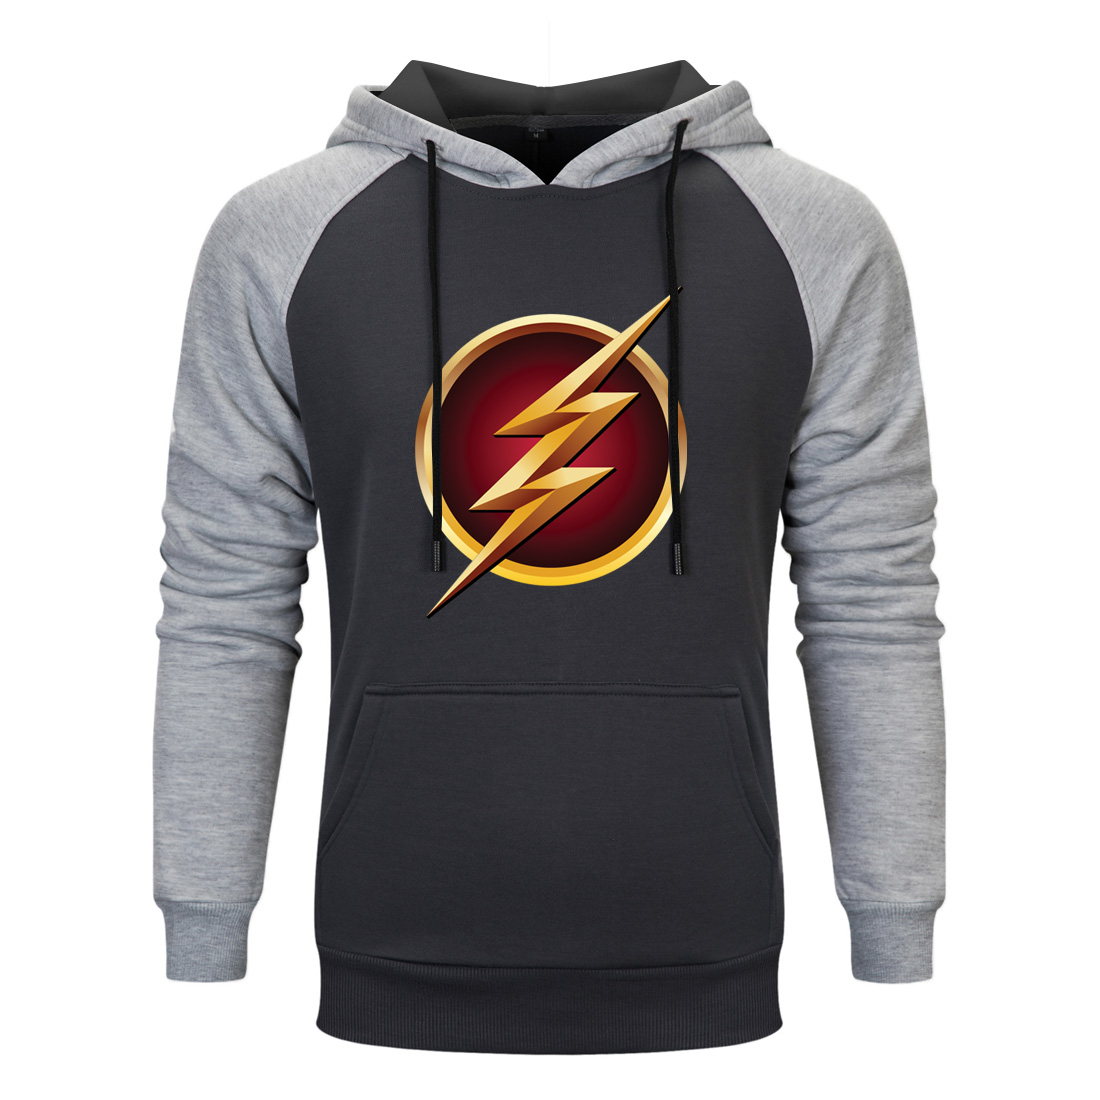 The Flash Super Hero Raglan Hooded Hoodies Men spring autumn Sweatshirts 2020 Casual Fleece Pullovers Male Casual Hipster coats